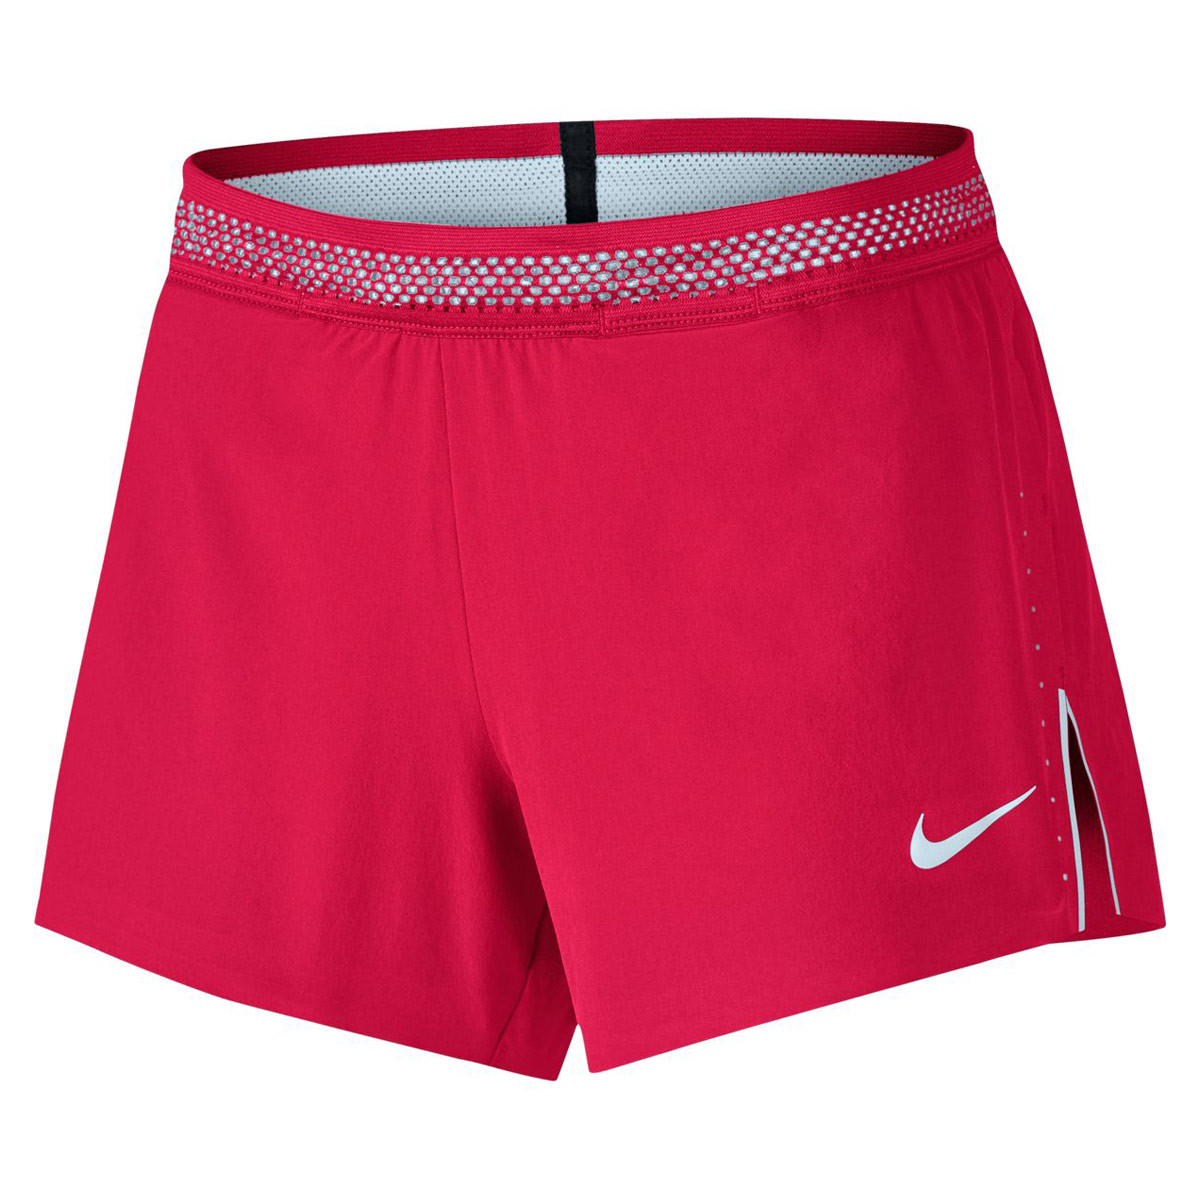 Course Running Rose Pantalons Femme Short Nike Aeroswift Pour HYeIED9W2